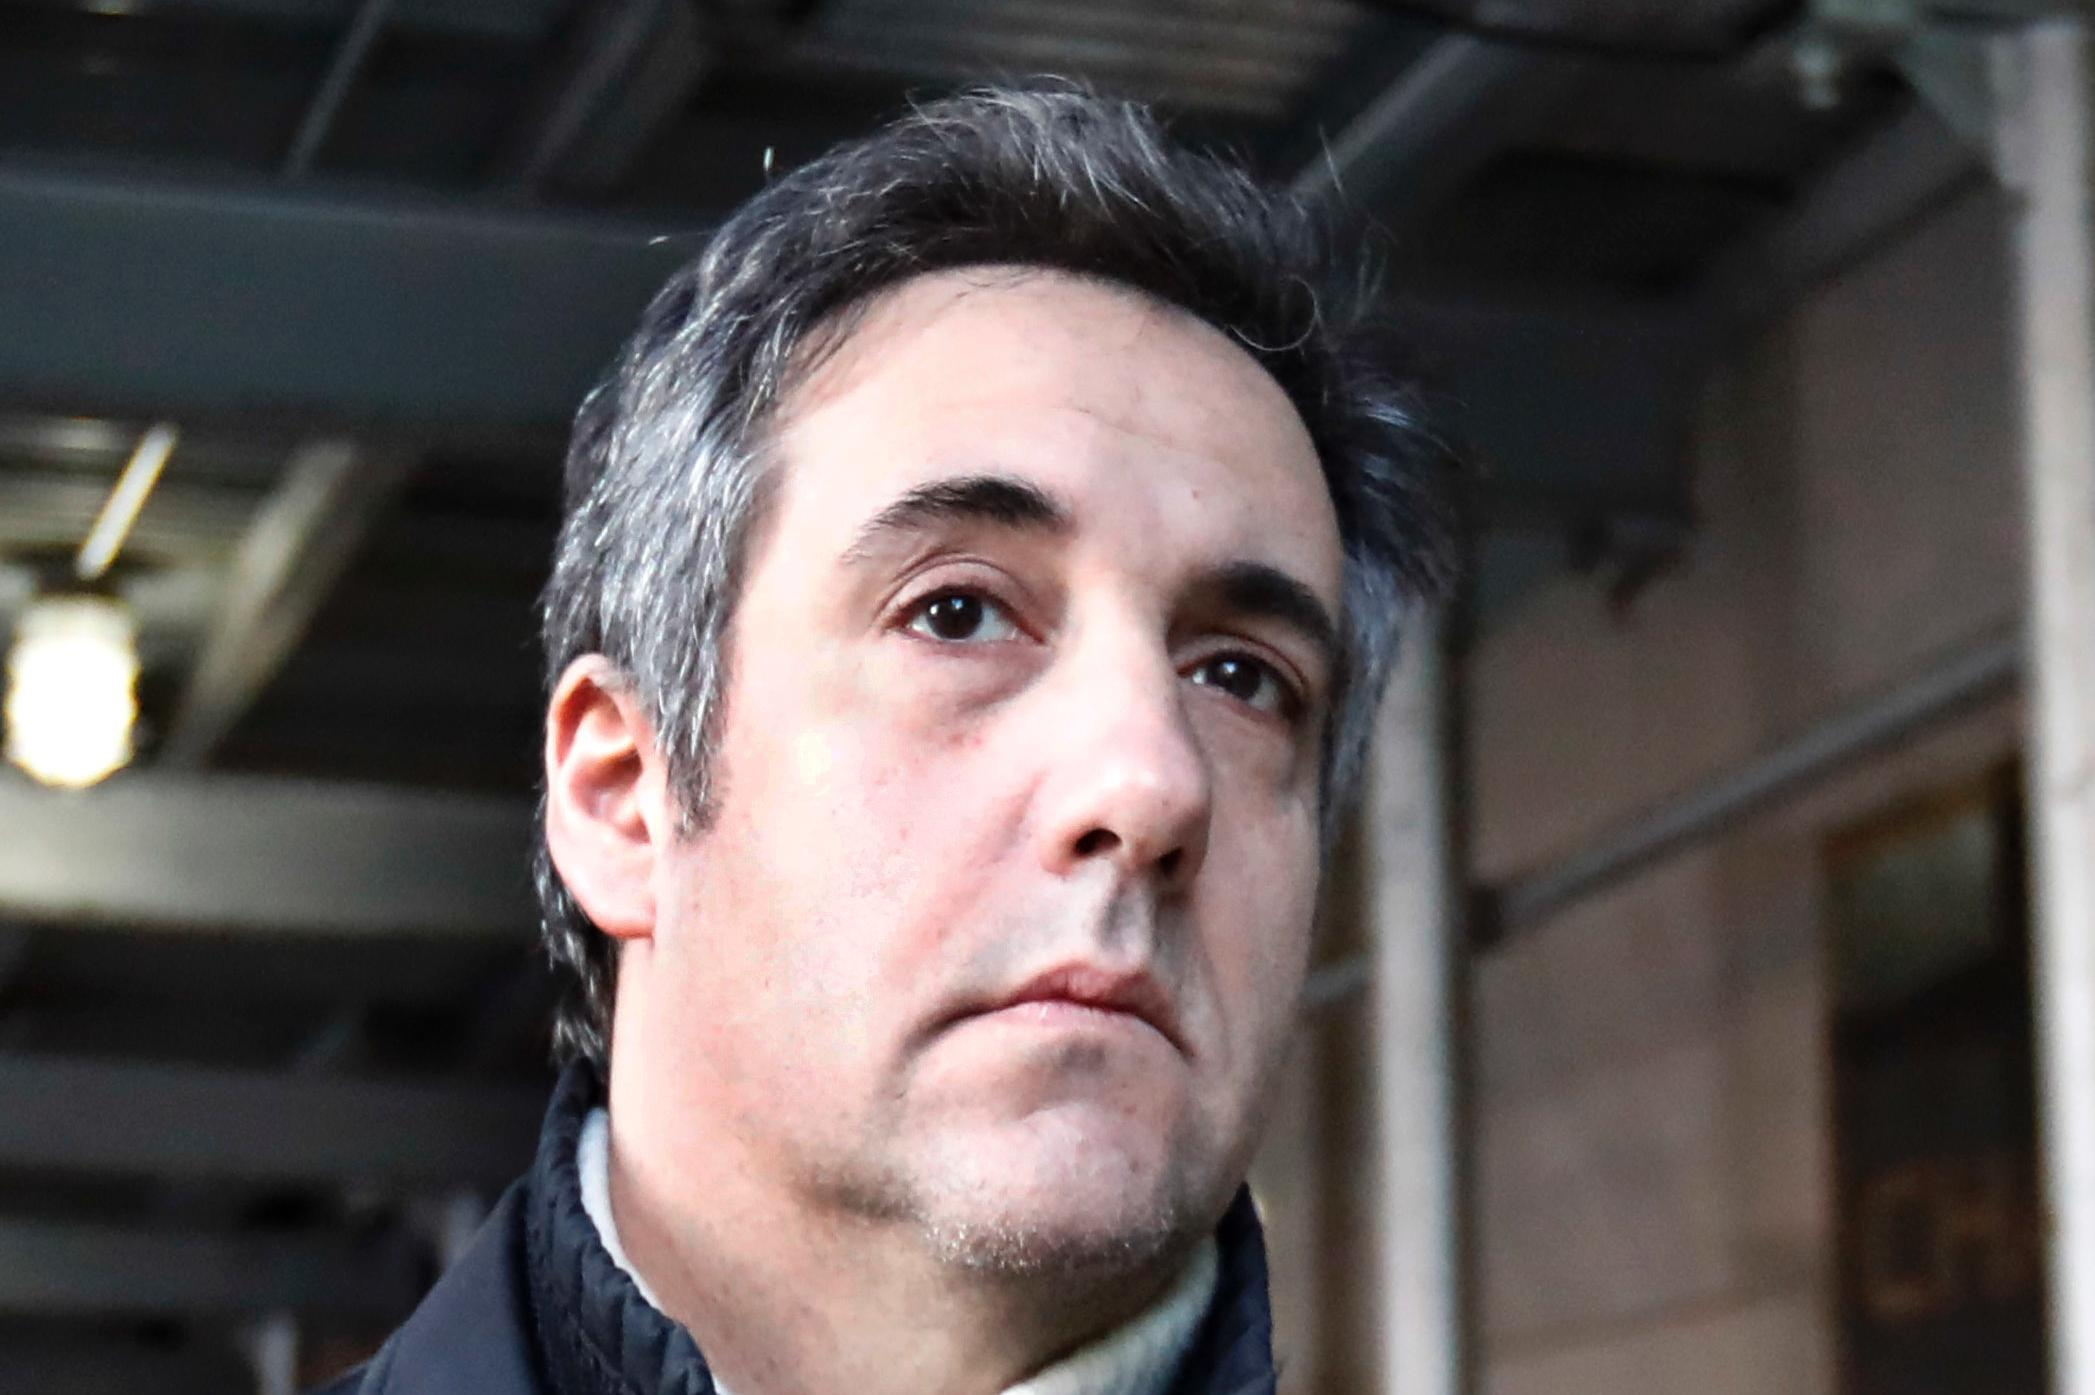 washingtonpost.com - Aaron Blake - BuzzFeed's Michael Cohen story, if true, looks to be the most damning to date for Trump